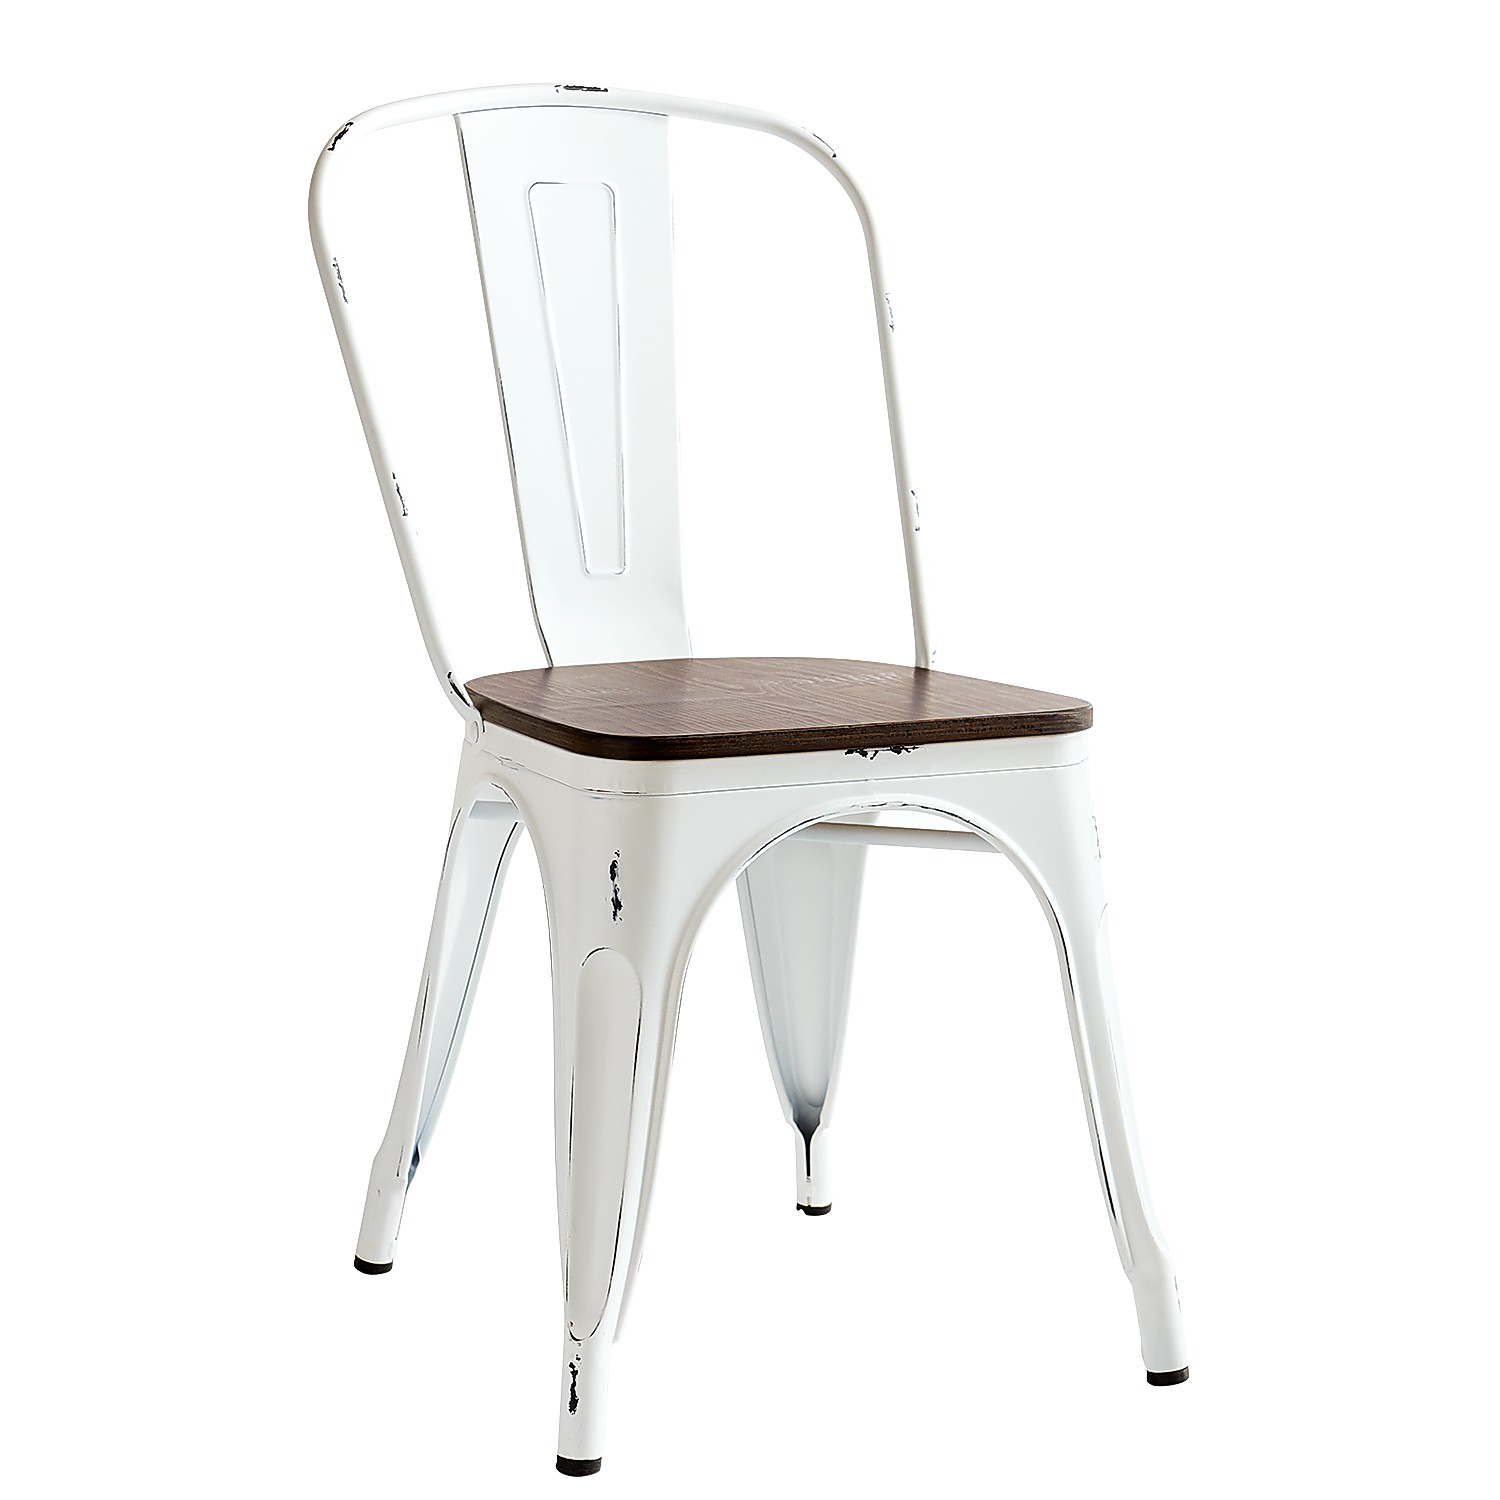 Colfax White Dining Chair